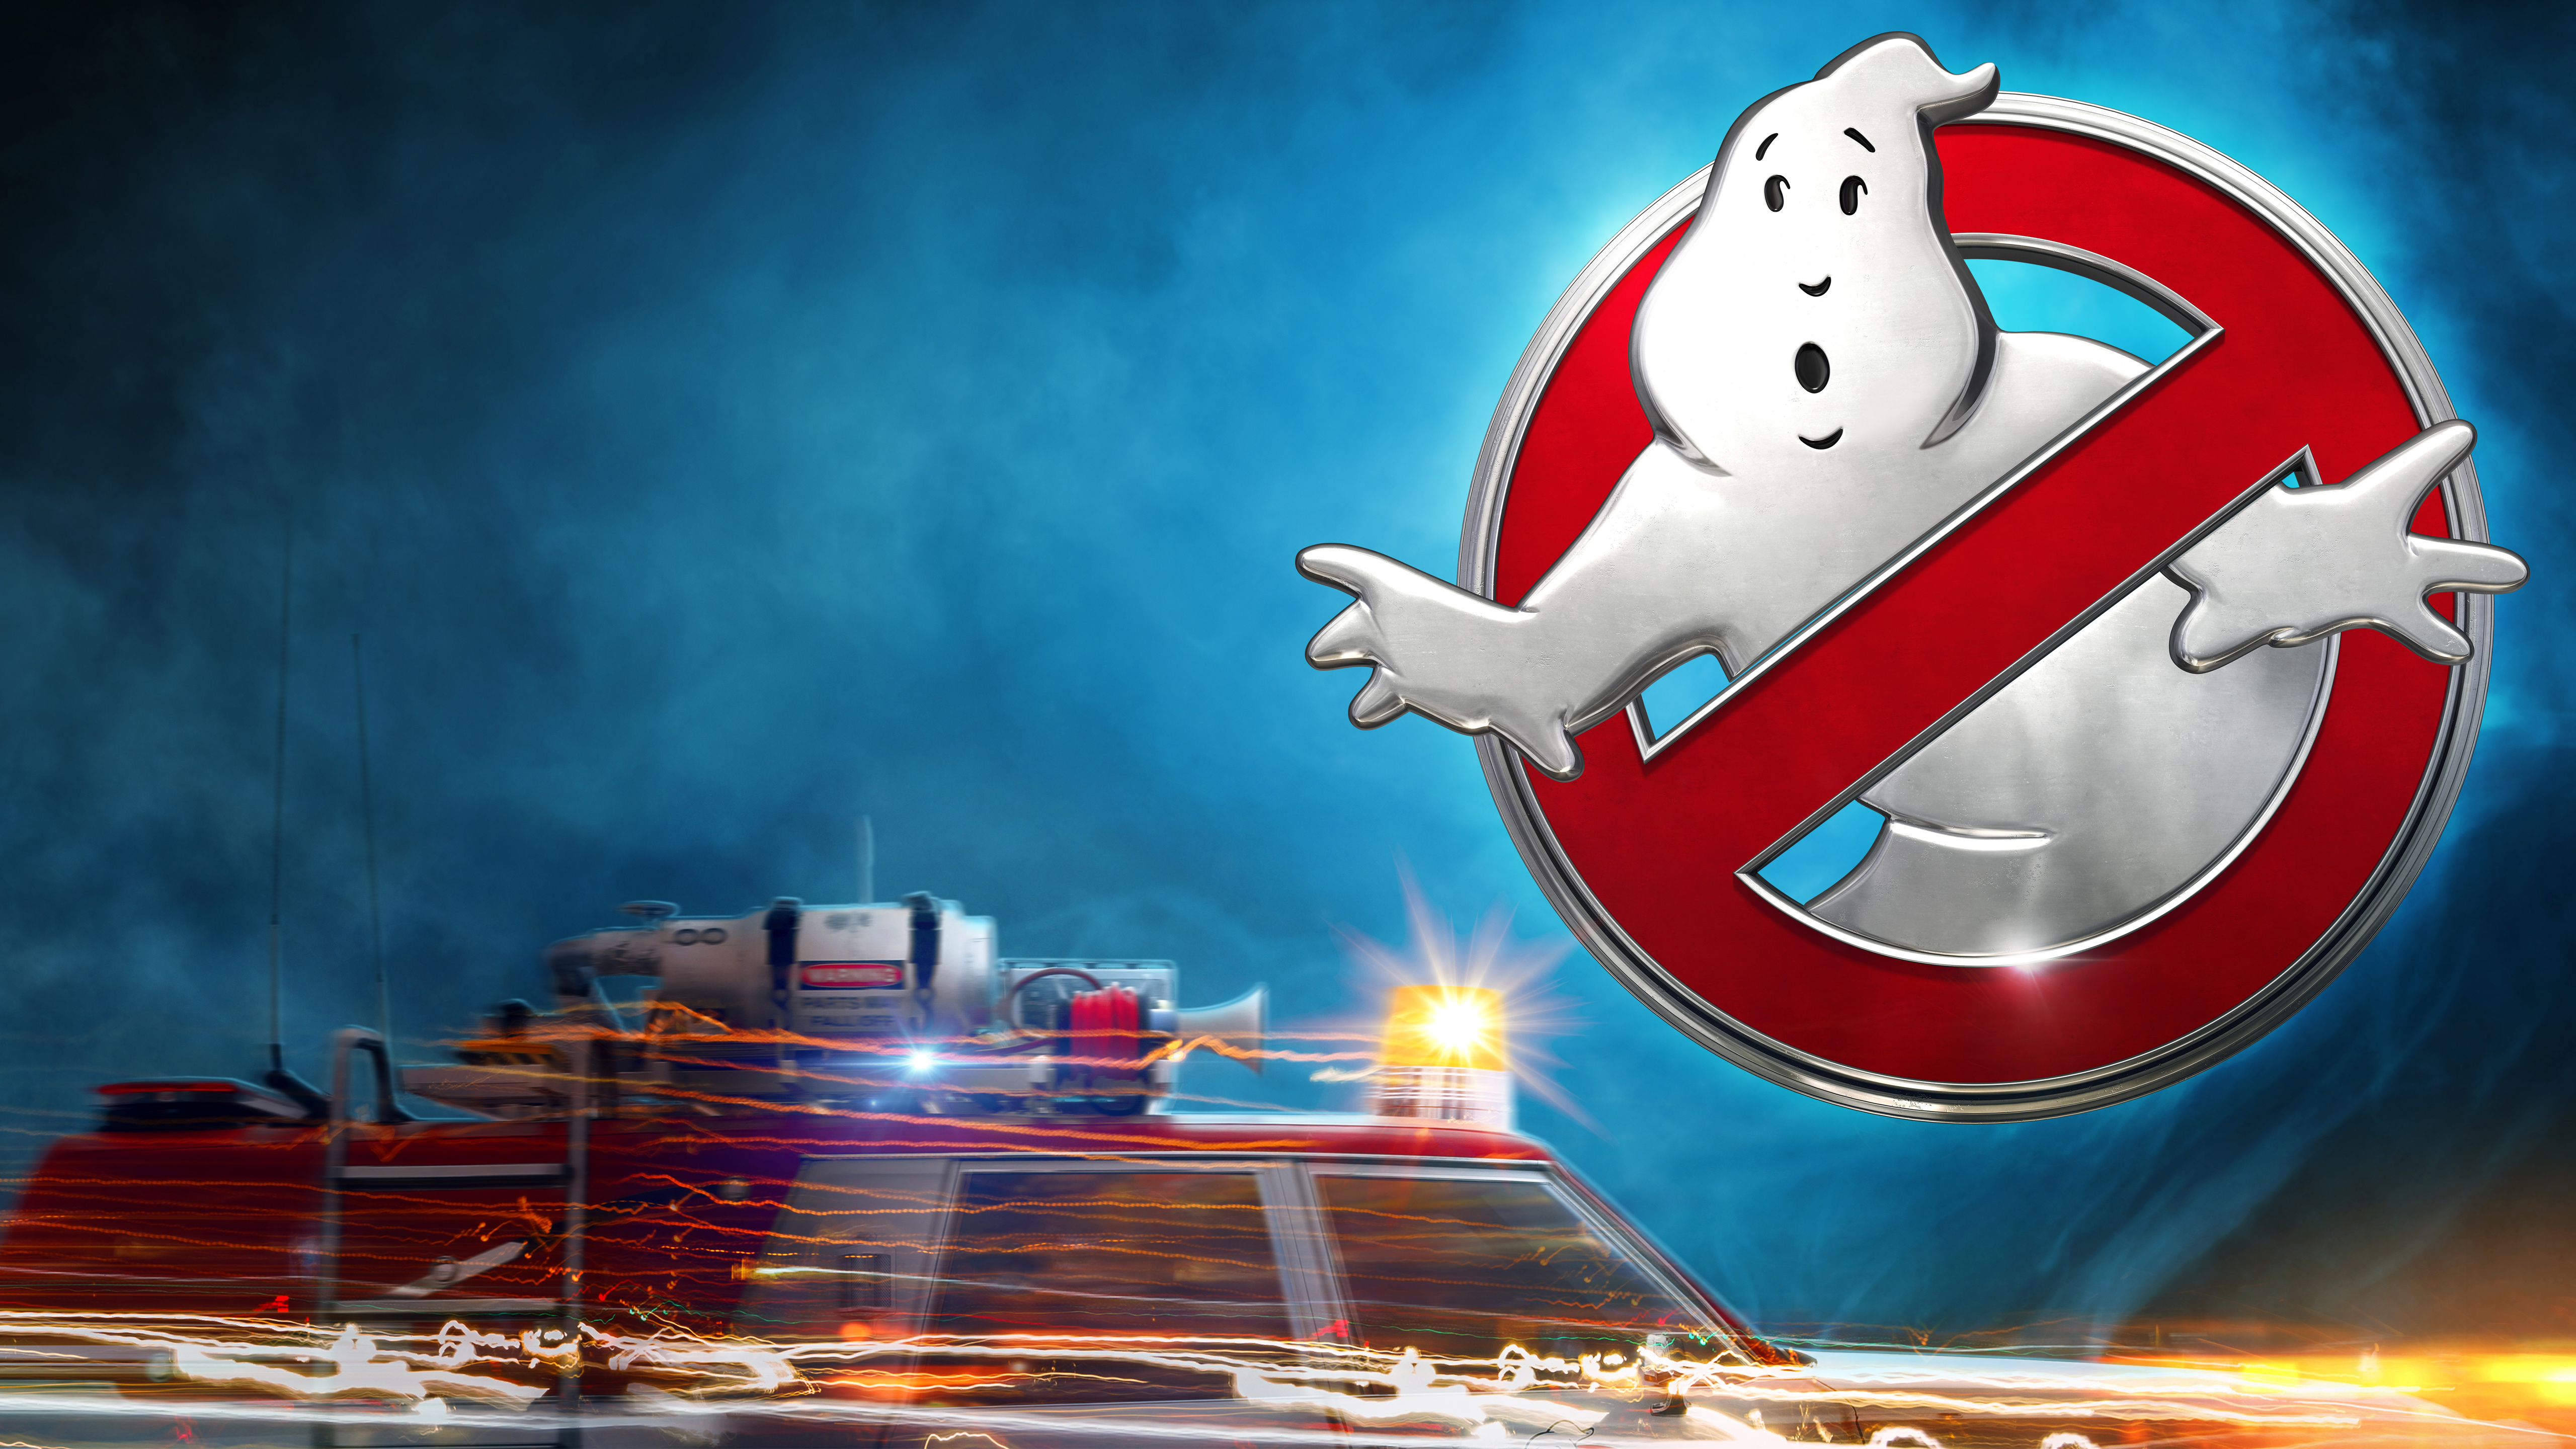 Ghostbusters wallpapers photos and desktop backgrounds up - Ghostbusters wallpaper ...